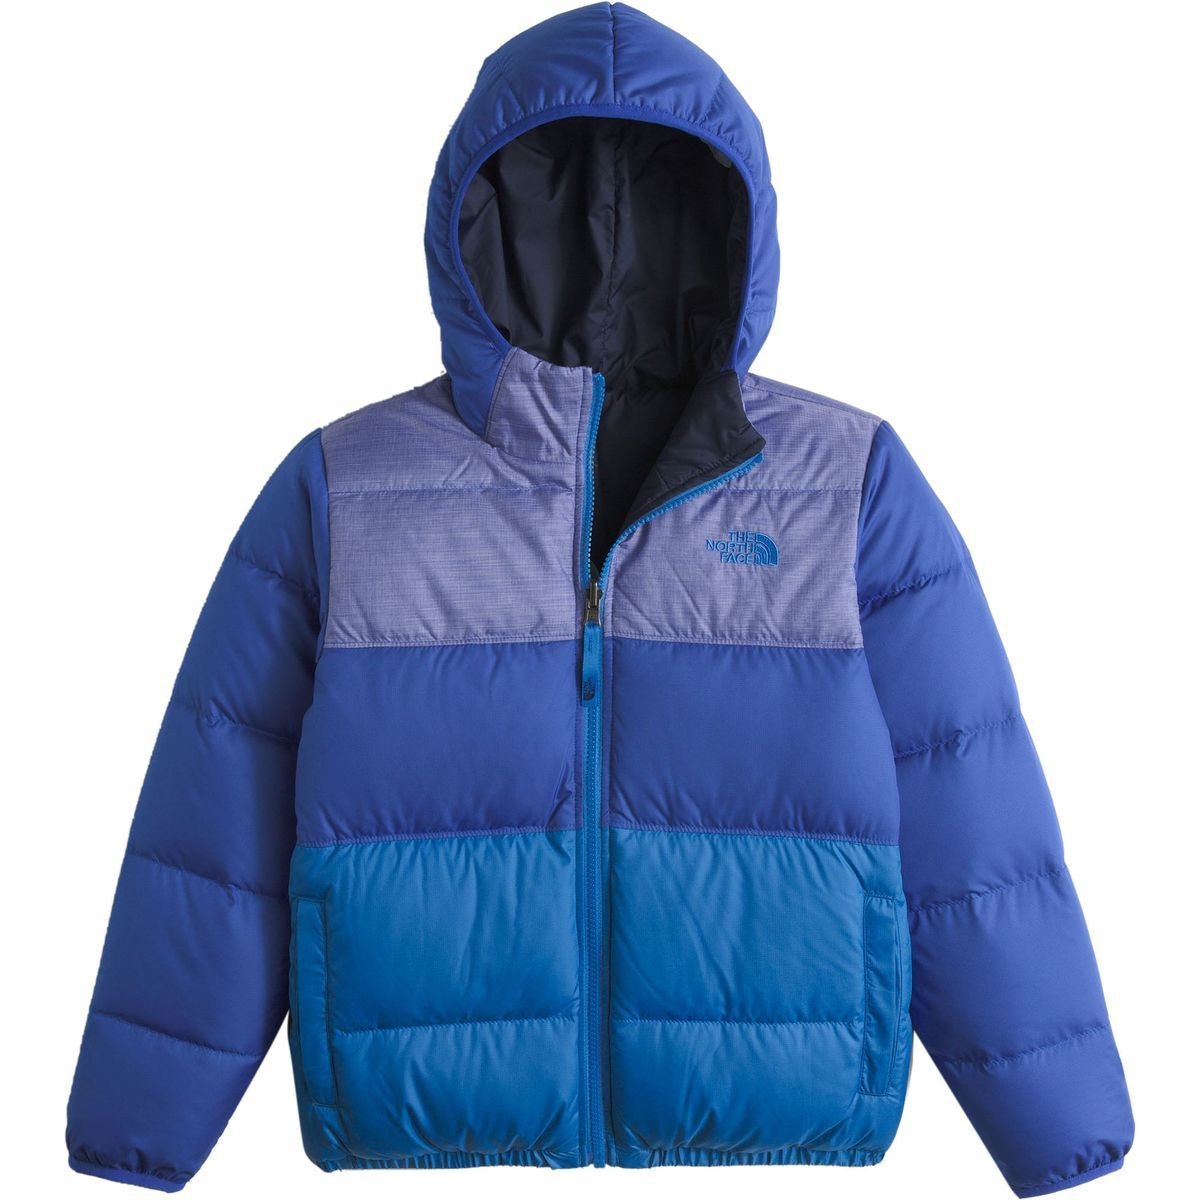 573a8ece1aa7 The North Face Moondoggy Reversible Down Jacket Boys  Honor Blue L ...